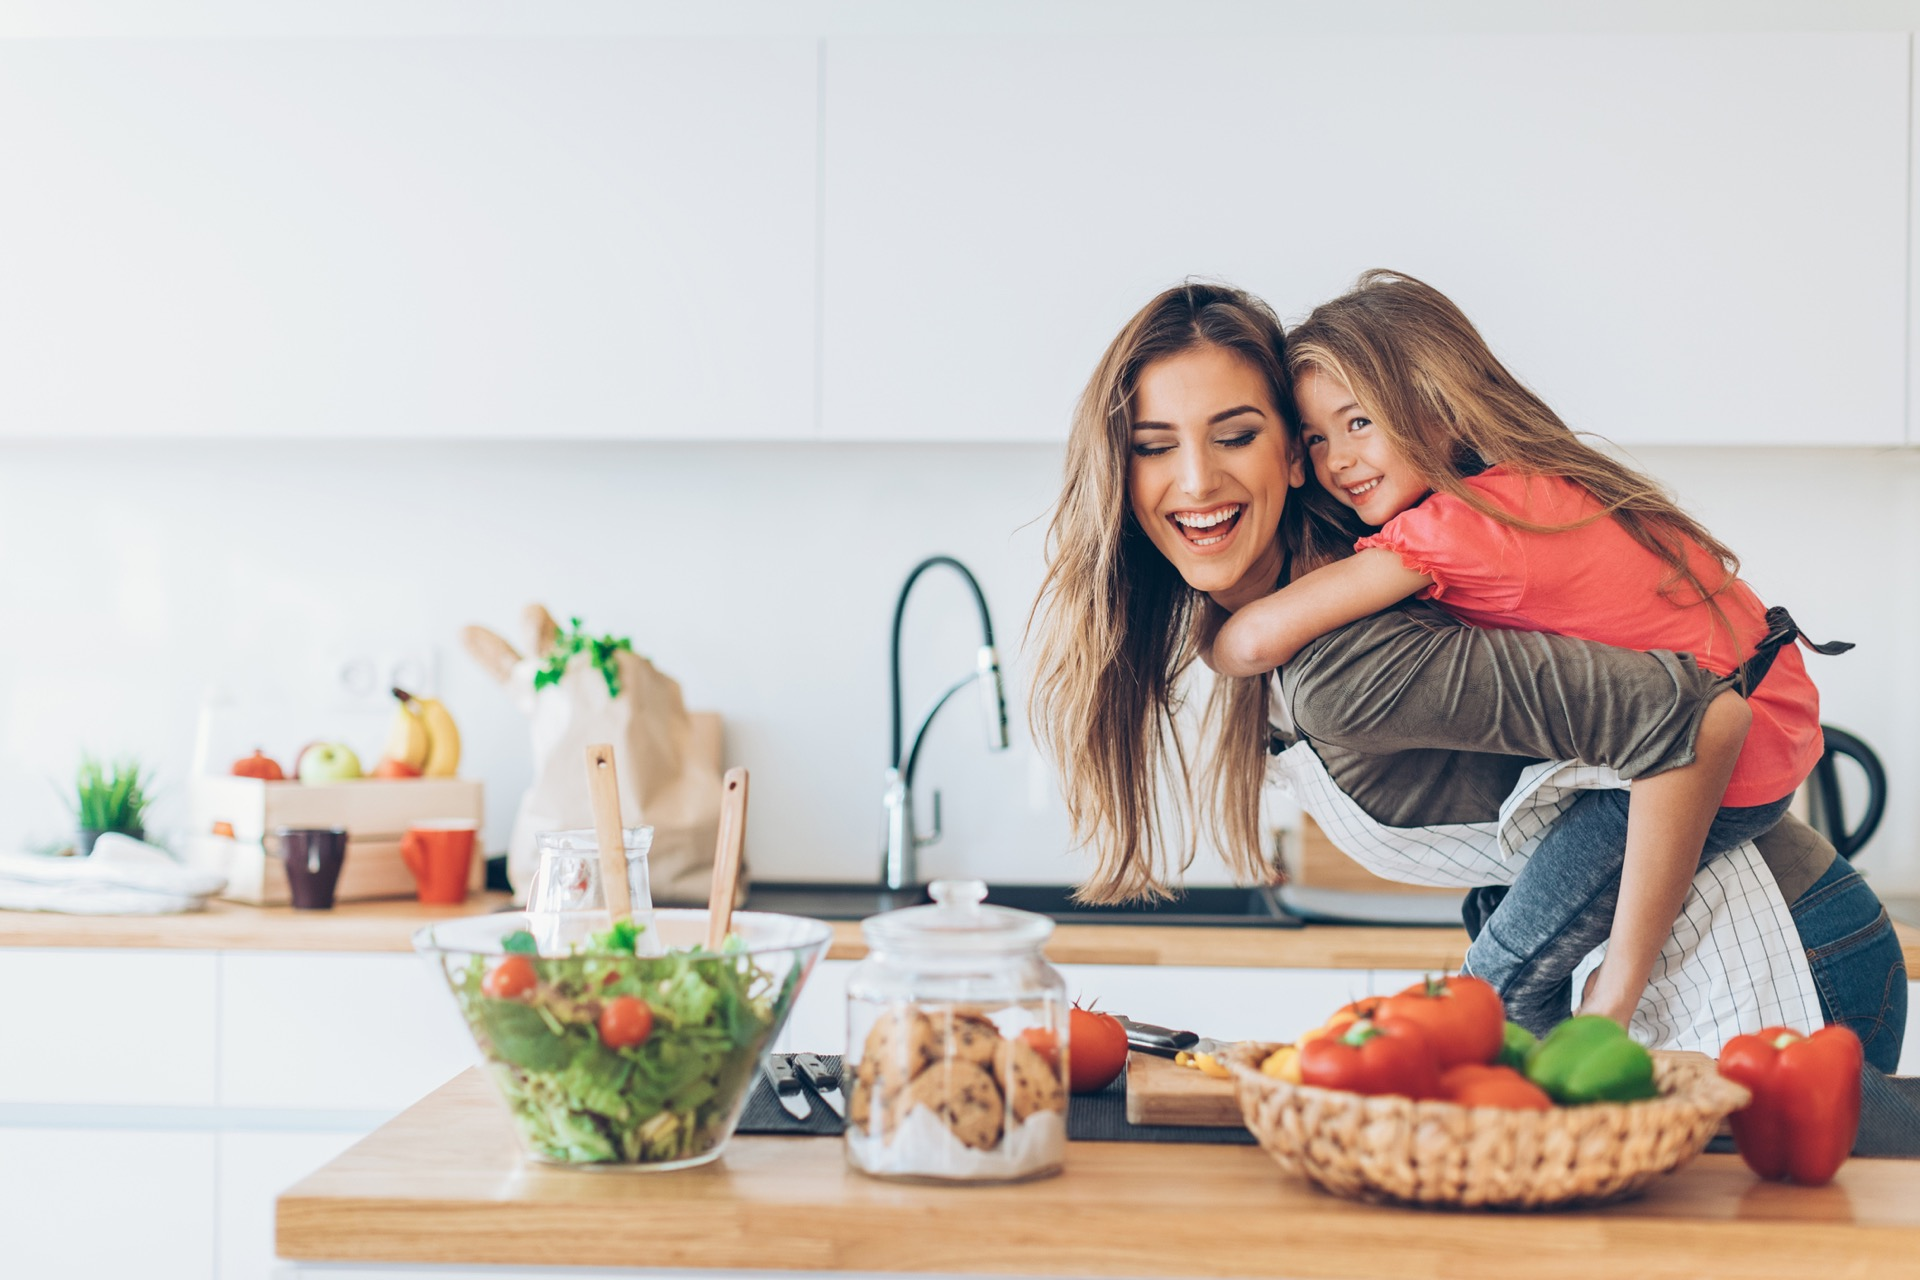 Beautiful mother and daughter having fun piggy-back ride in the kitchen.